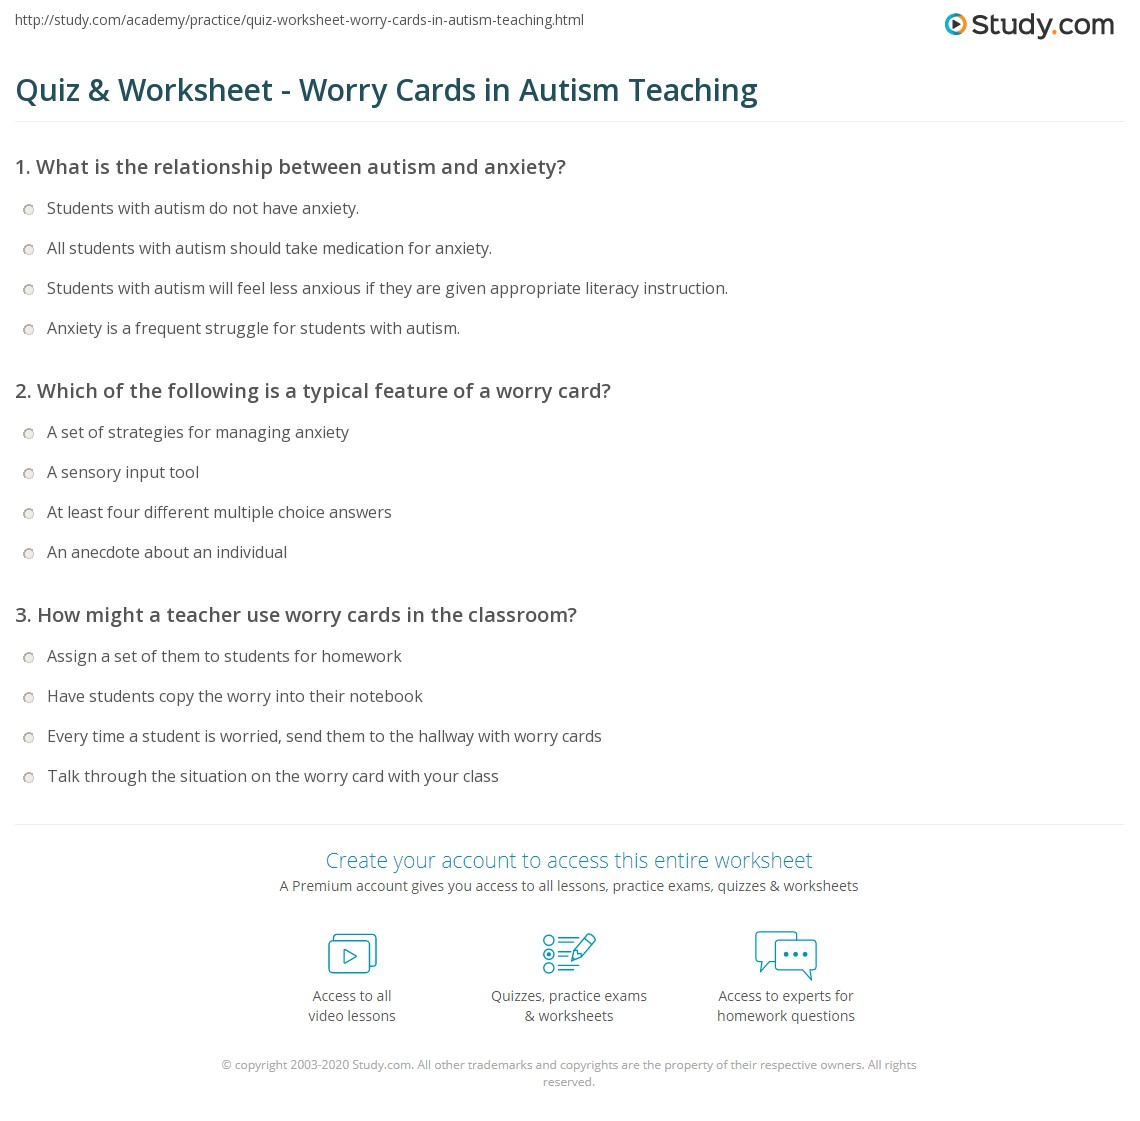 A Teachers Struggle With Student Anxiety >> Quiz Worksheet Worry Cards In Autism Teaching Study Com